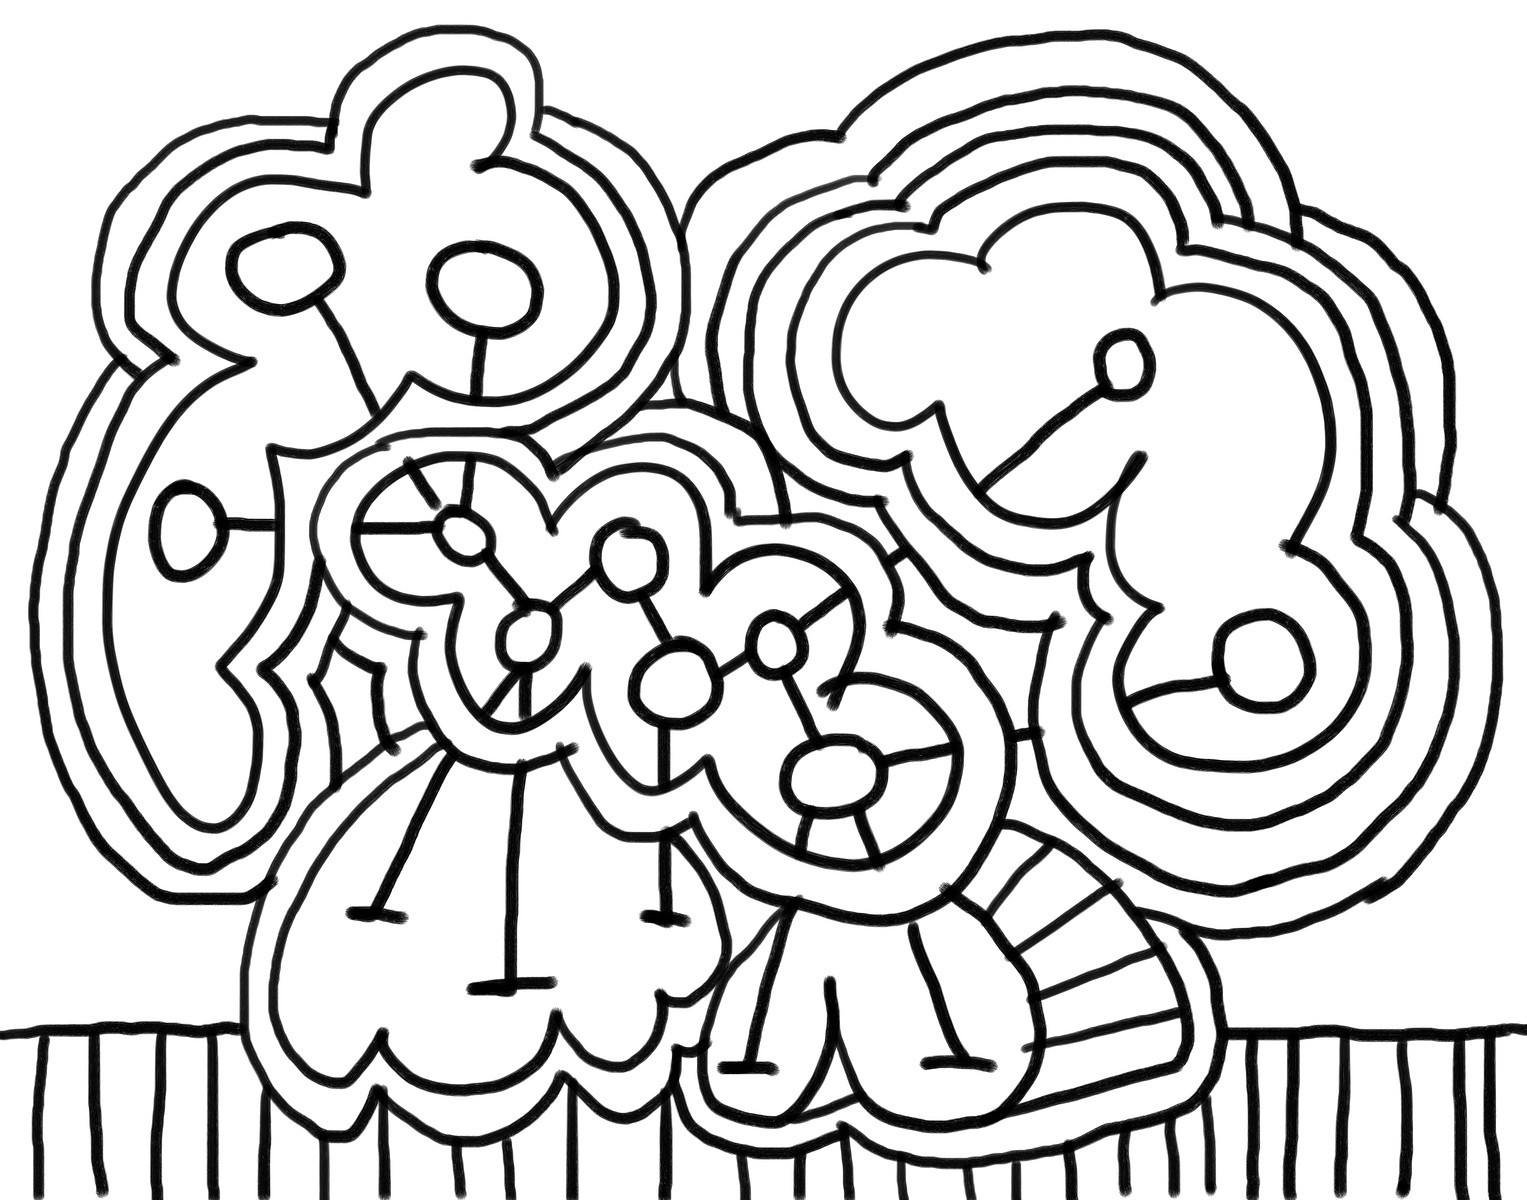 Coloring pages abstract - Abstract Coloring Pages For Kids